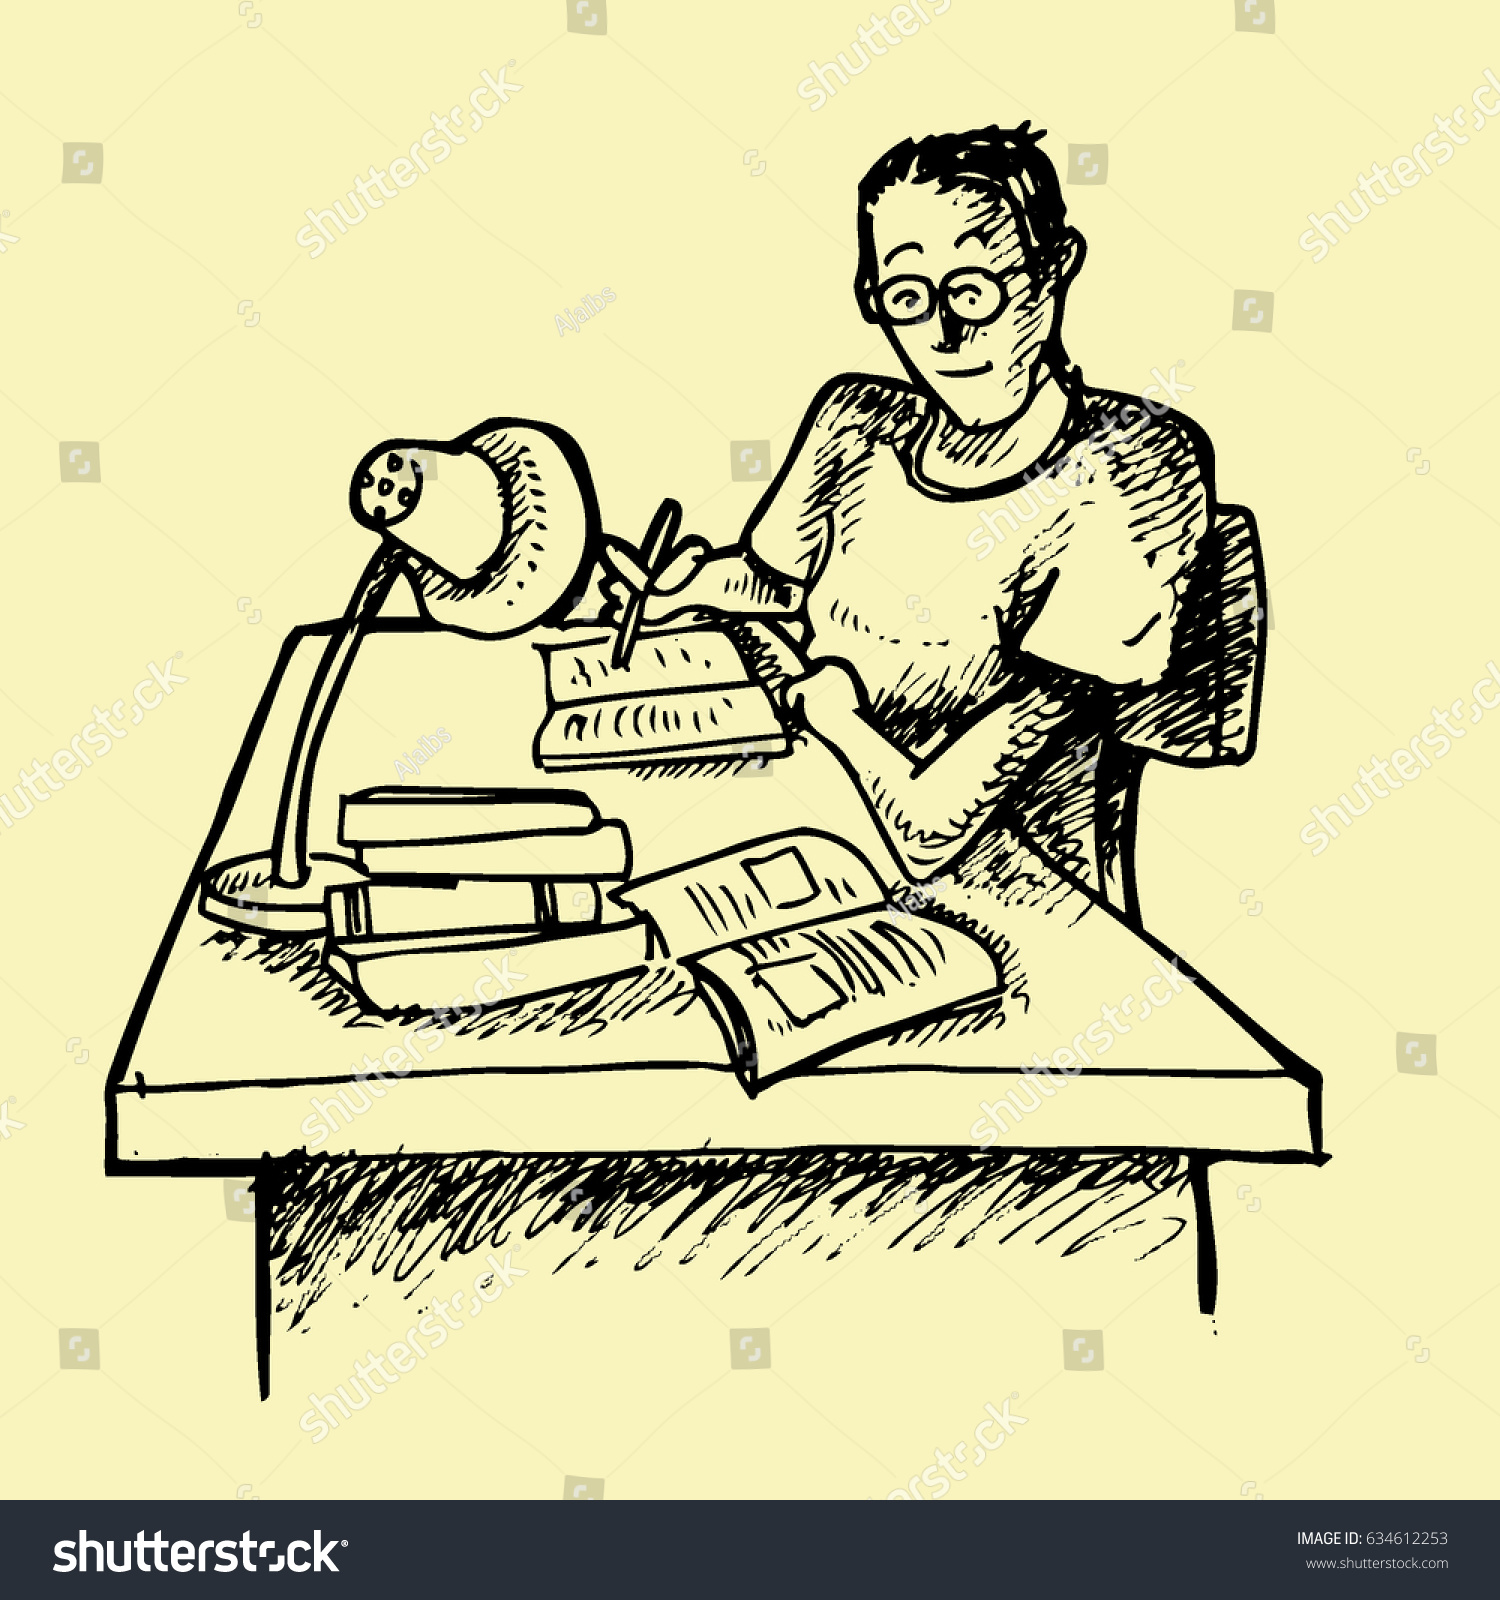 the man writing and reading on the desk hand drawing illustration